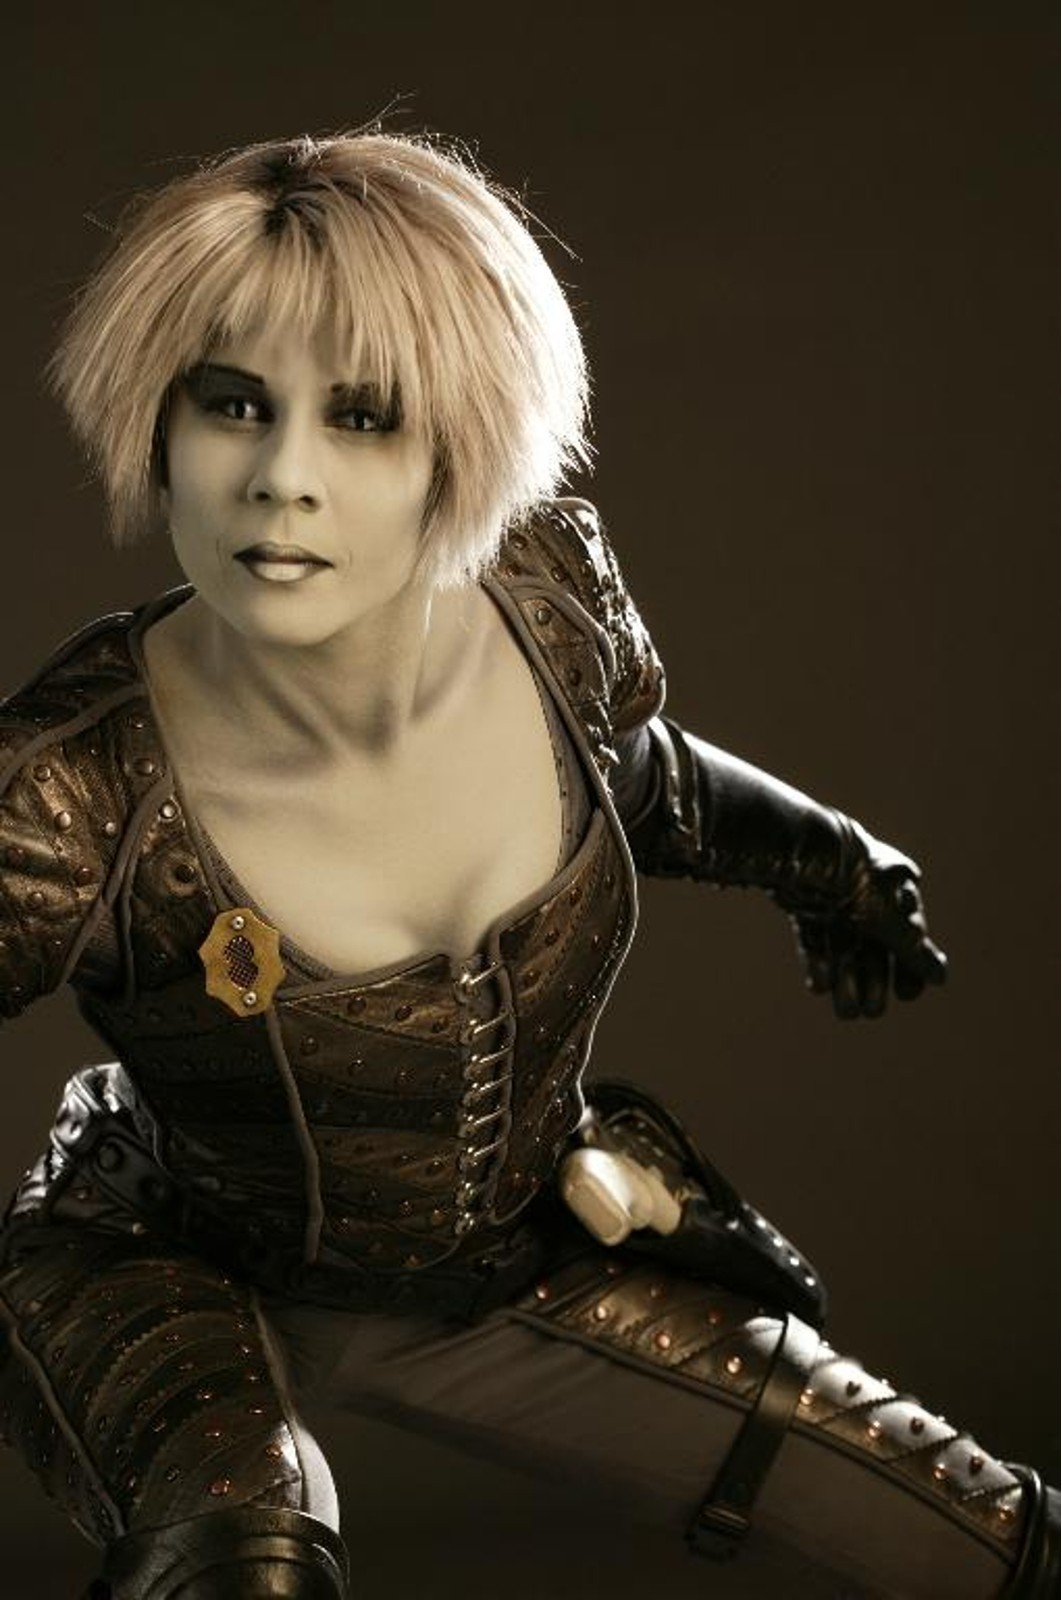 chiana farscape - photo #2